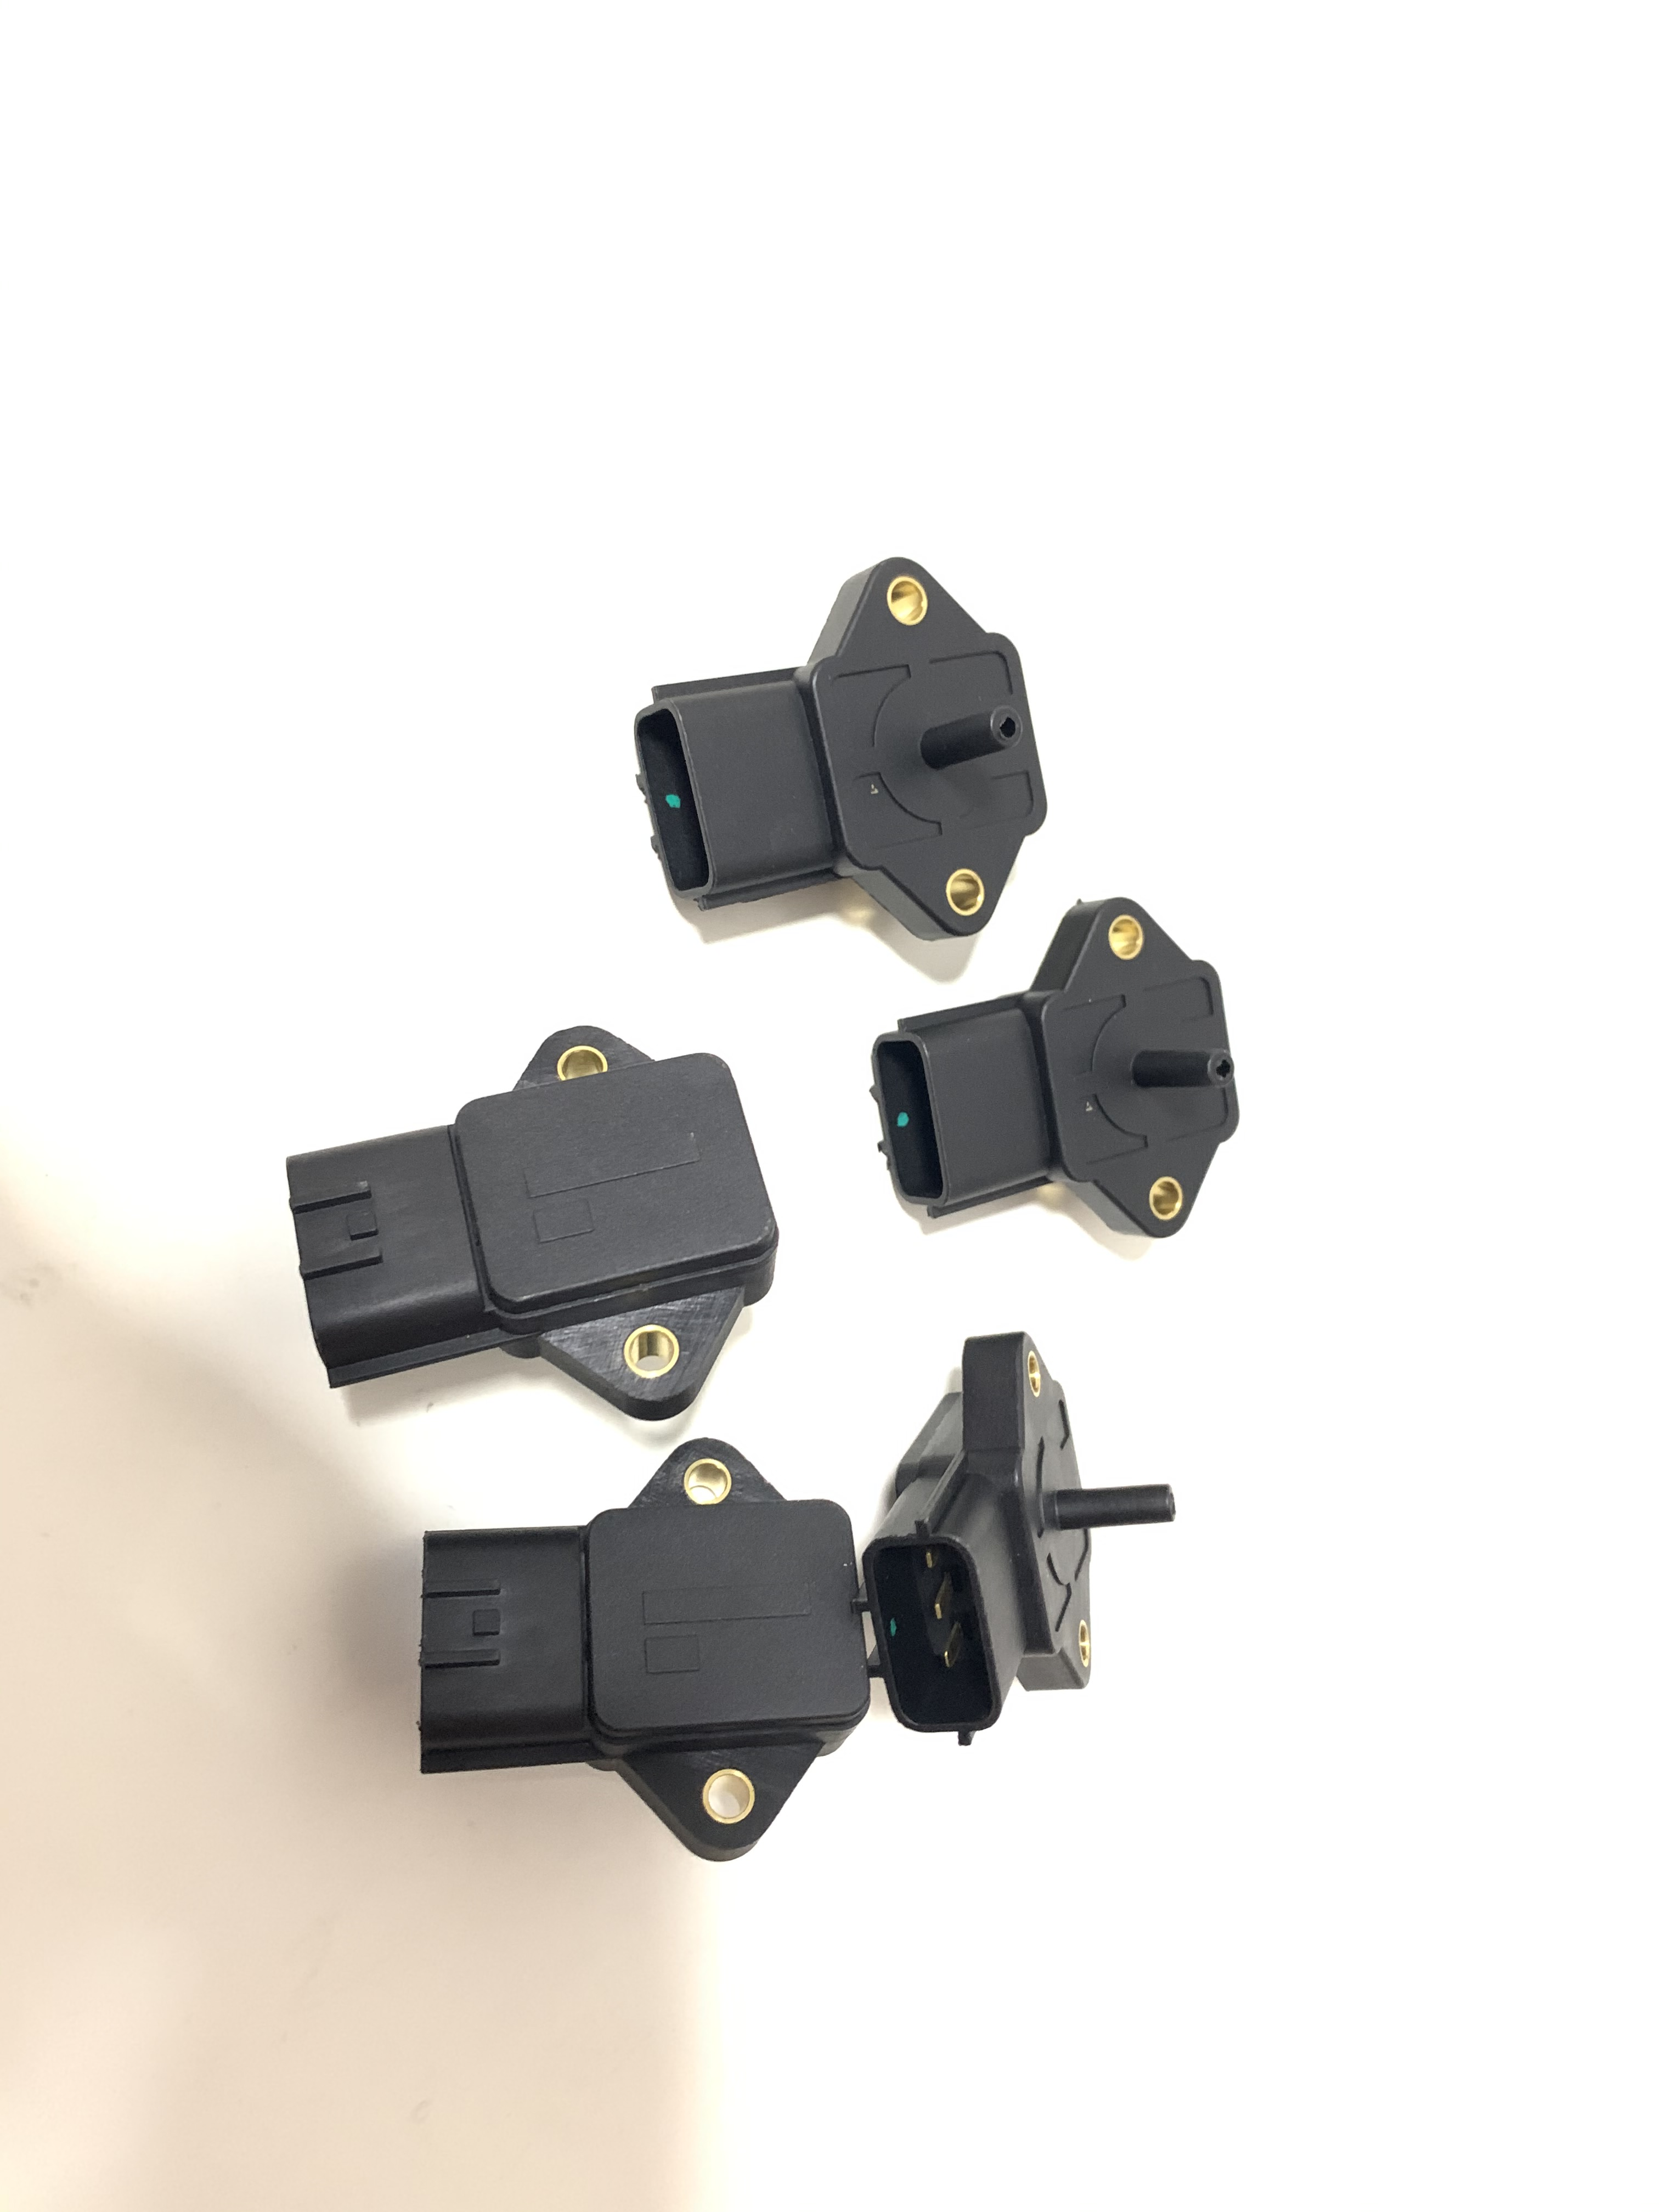 5pcs/lot New Map Air Pressure Sensor For Forklift Oem 1548352 Clearance Price